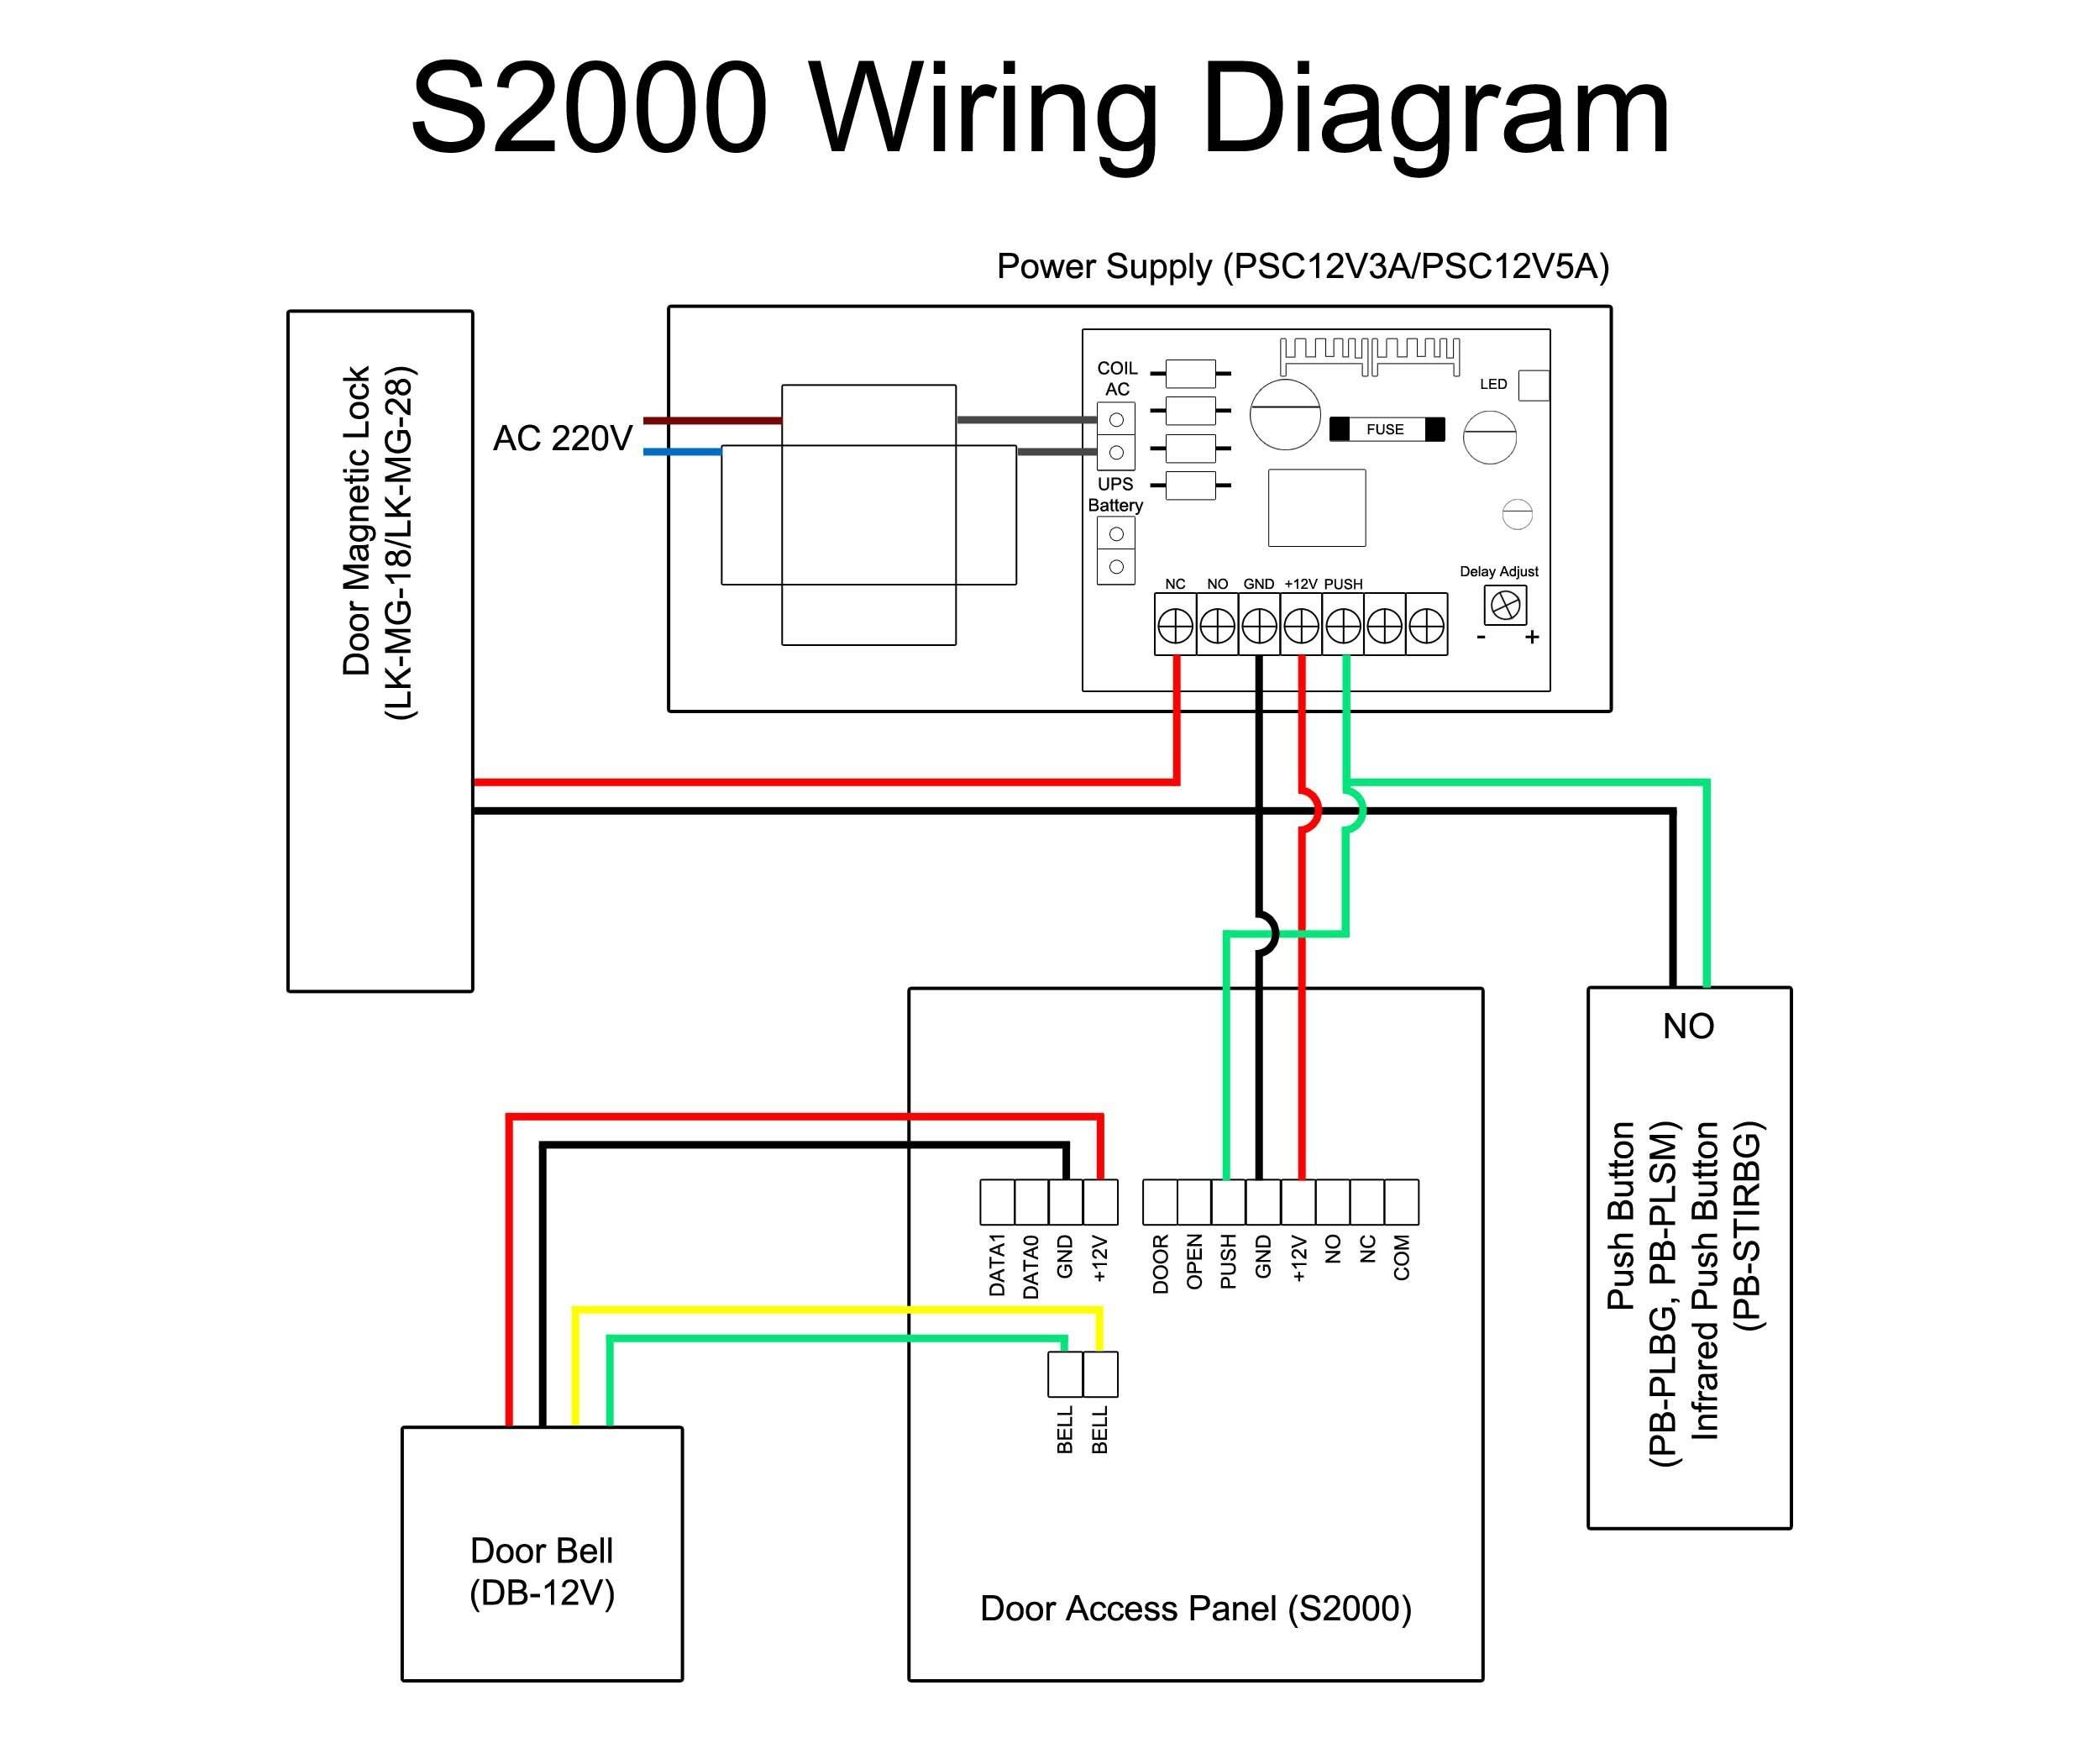 harbor freight security camera wiring diagram Download-Wiring Diagram for Home Security Camera Save Home Cctv Wiring Diagram Save Best Harbor Freight 16-a